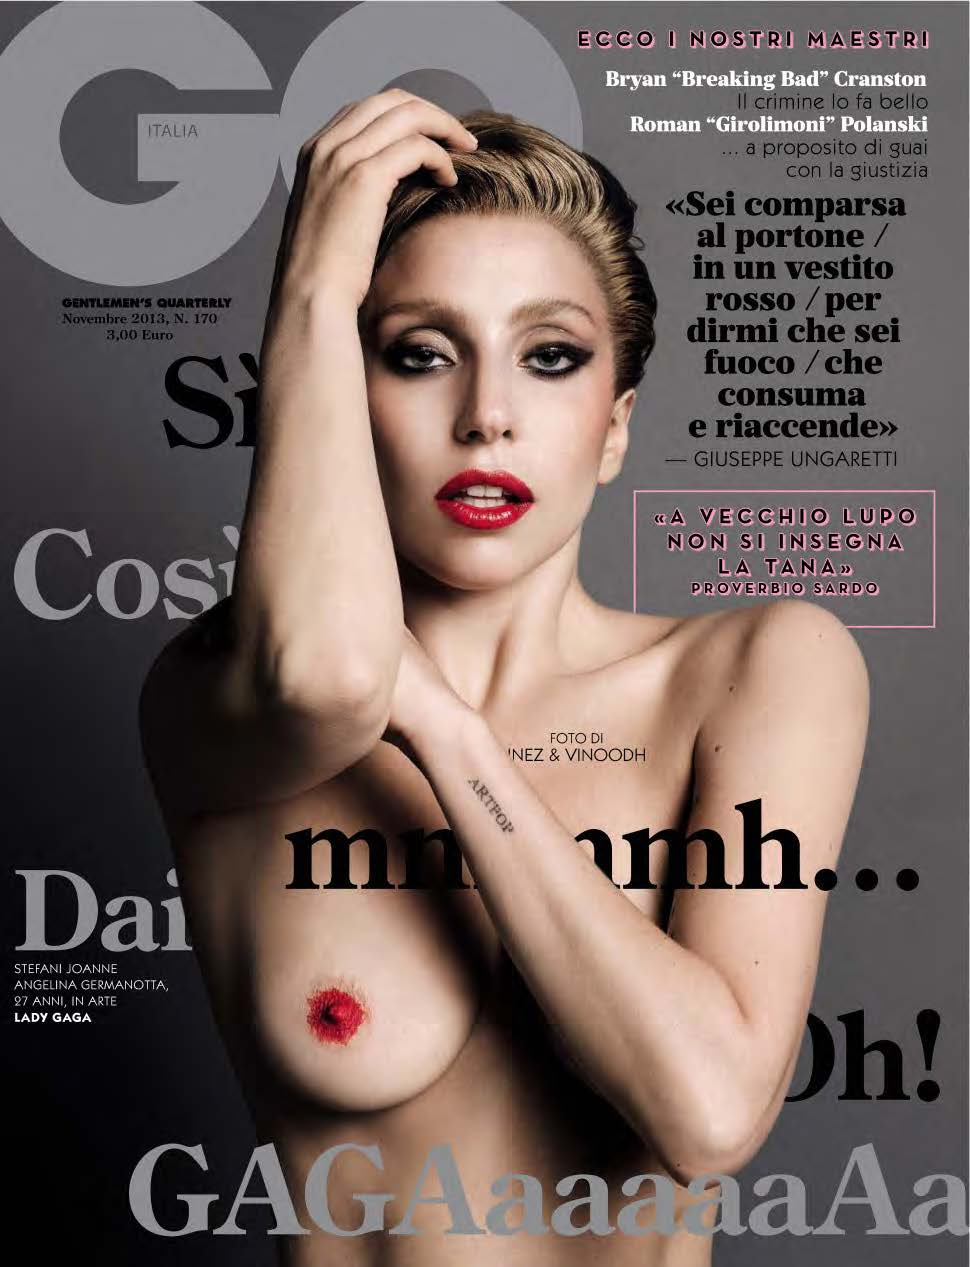 Lady Gaga for GQ Italia